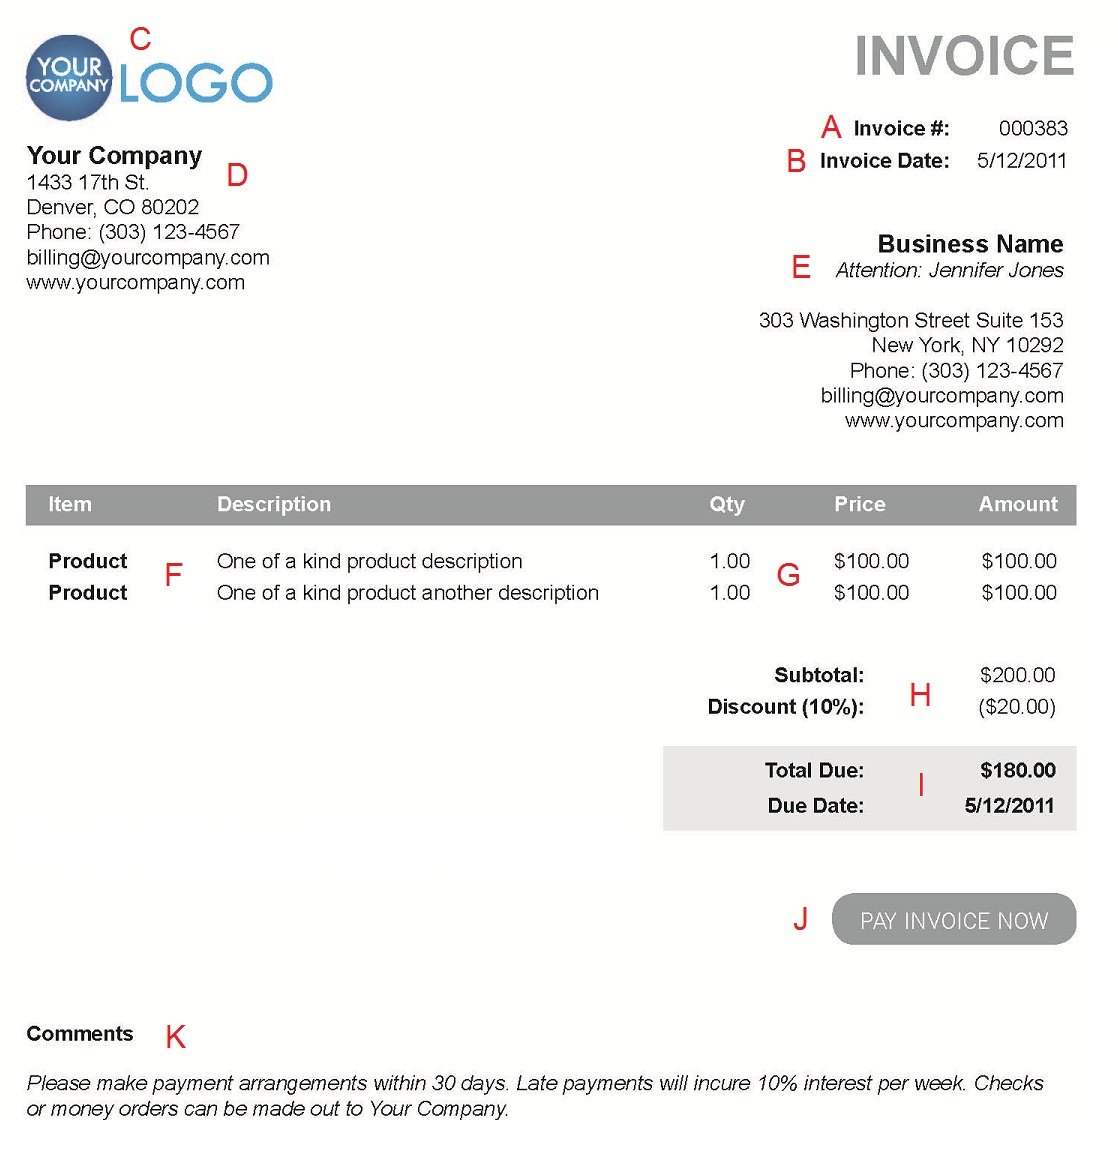 Pigbrotherus  Mesmerizing The  Different Sections Of An Electronic Payment Invoice With Glamorous A  With Beautiful Global Depository Receipts Example Also Collection Receipt Meaning In Addition Money Receipt Pdf And Downloadable Receipts As Well As Template For Payment Receipt Additionally Meps Receipt From Paysimplecom With Pigbrotherus  Glamorous The  Different Sections Of An Electronic Payment Invoice With Beautiful A  And Mesmerizing Global Depository Receipts Example Also Collection Receipt Meaning In Addition Money Receipt Pdf From Paysimplecom